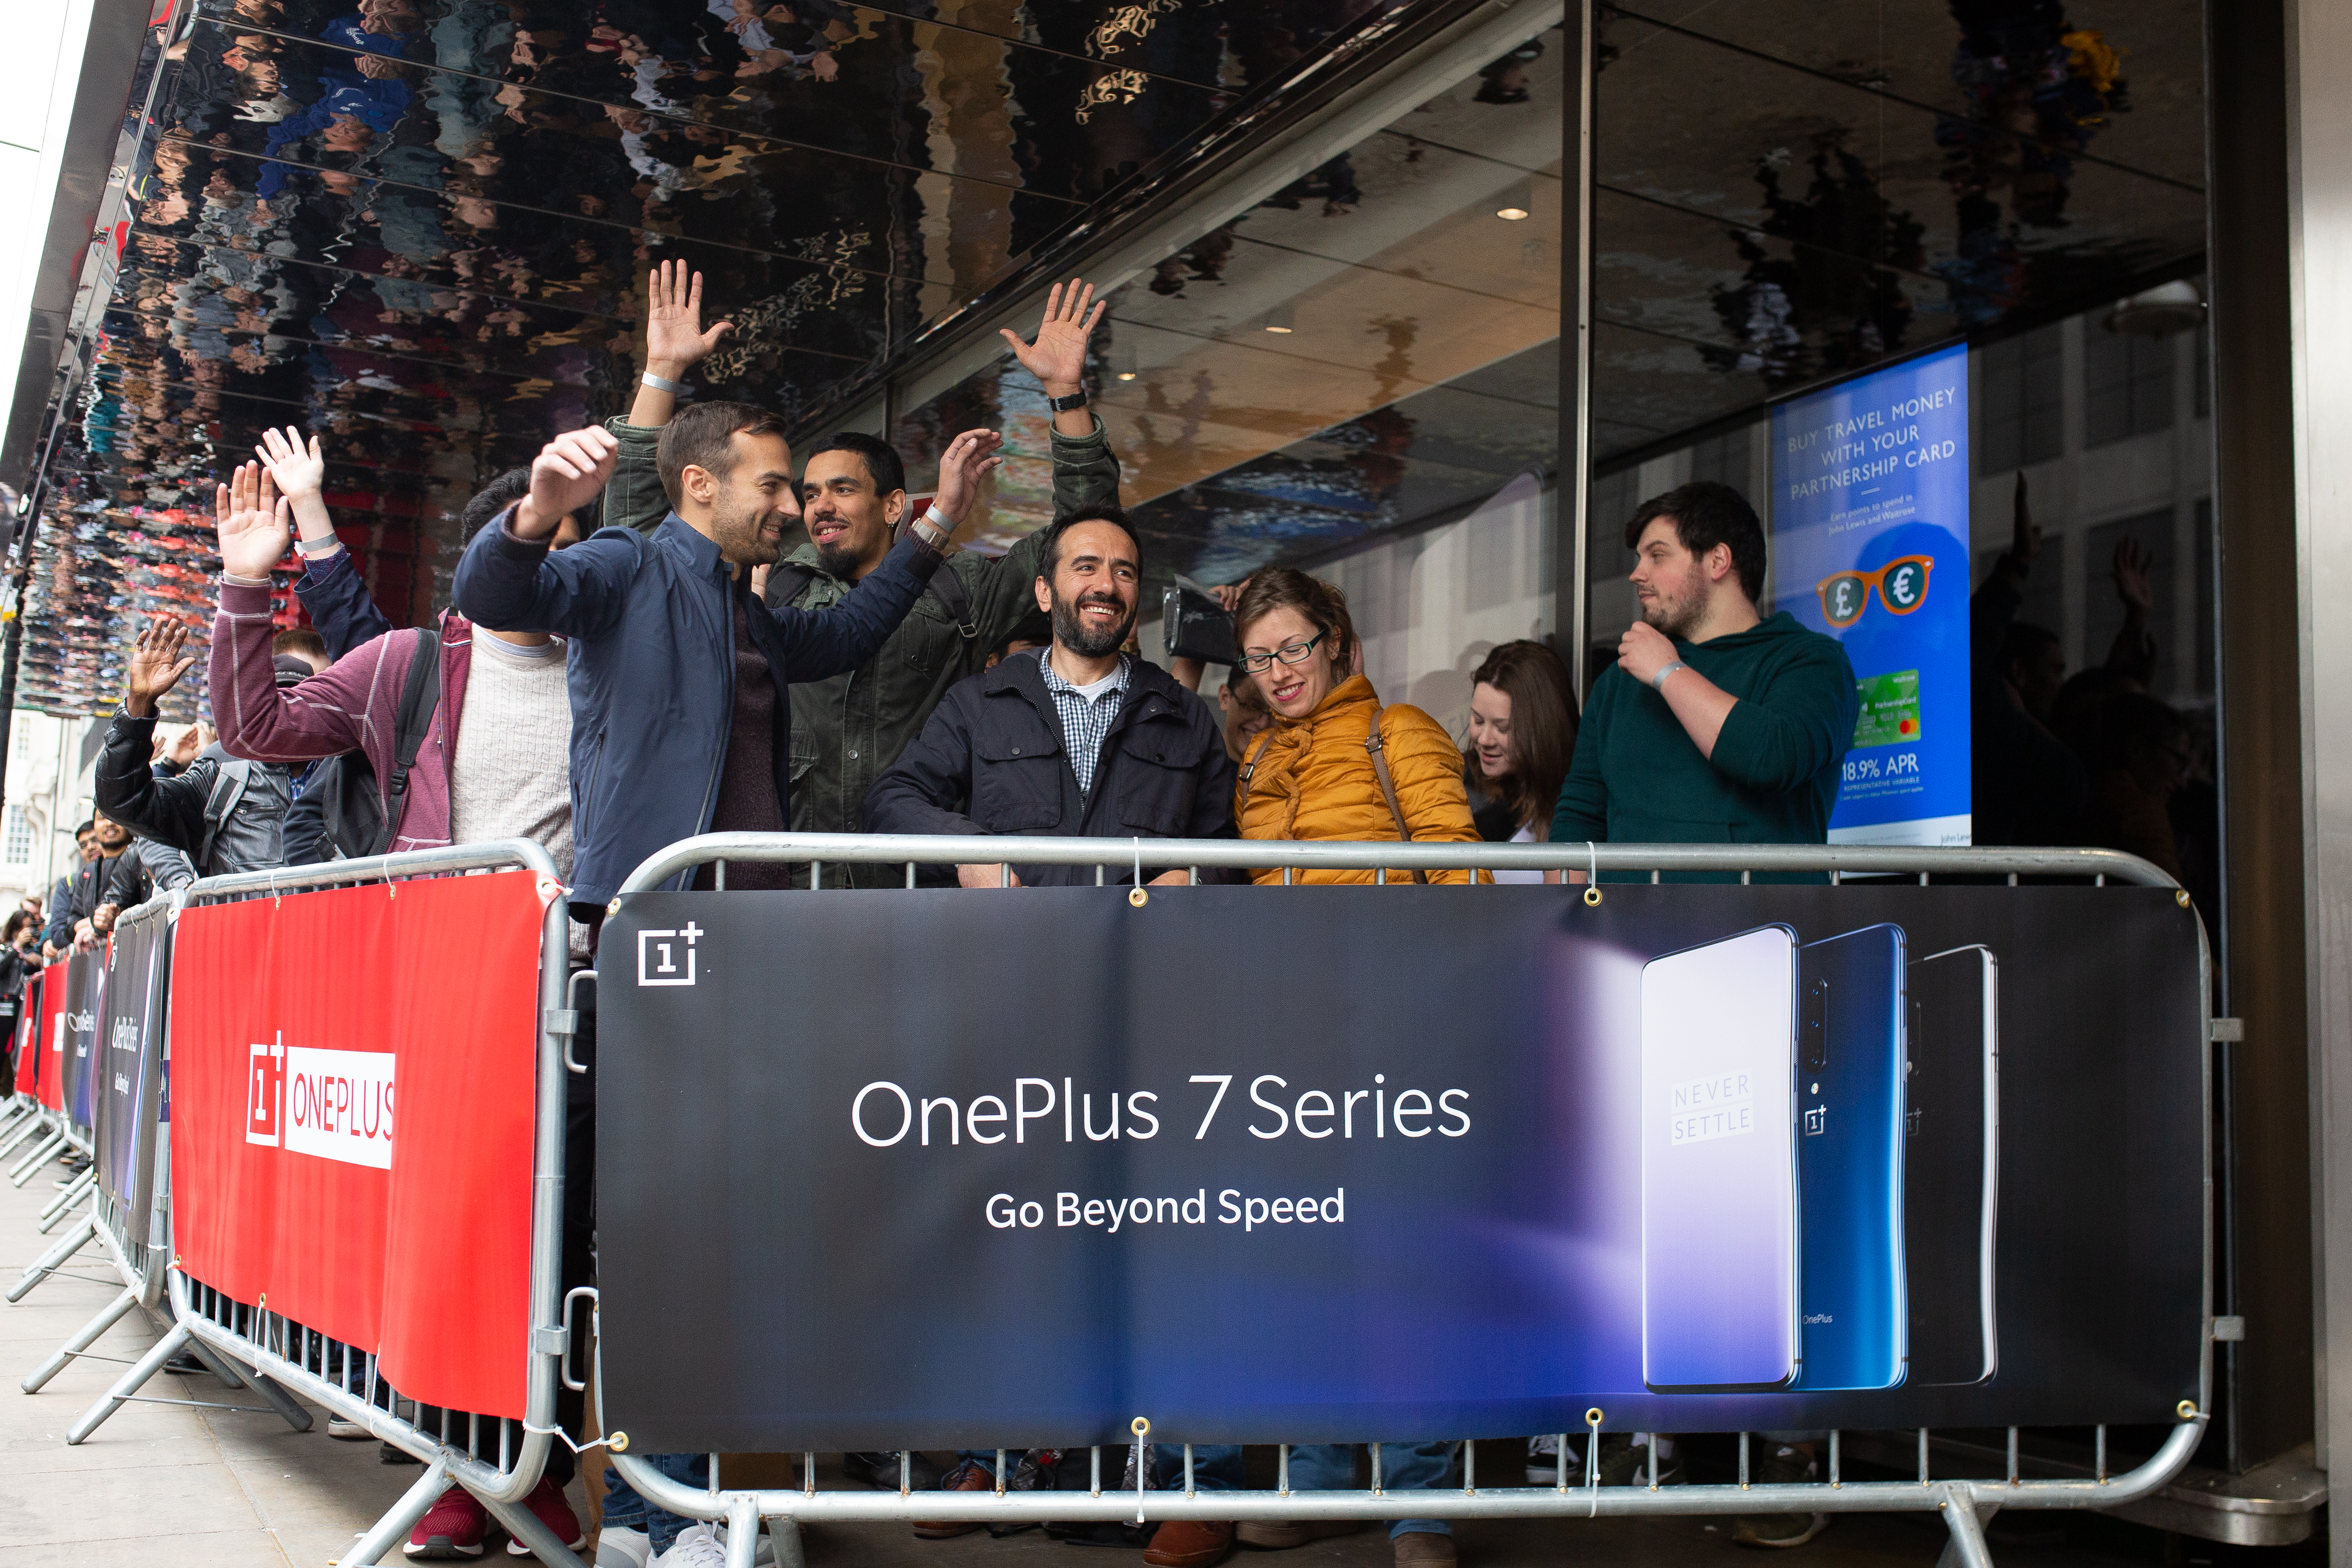 Gadget fans queue around the block for a phone that's not an iPhone